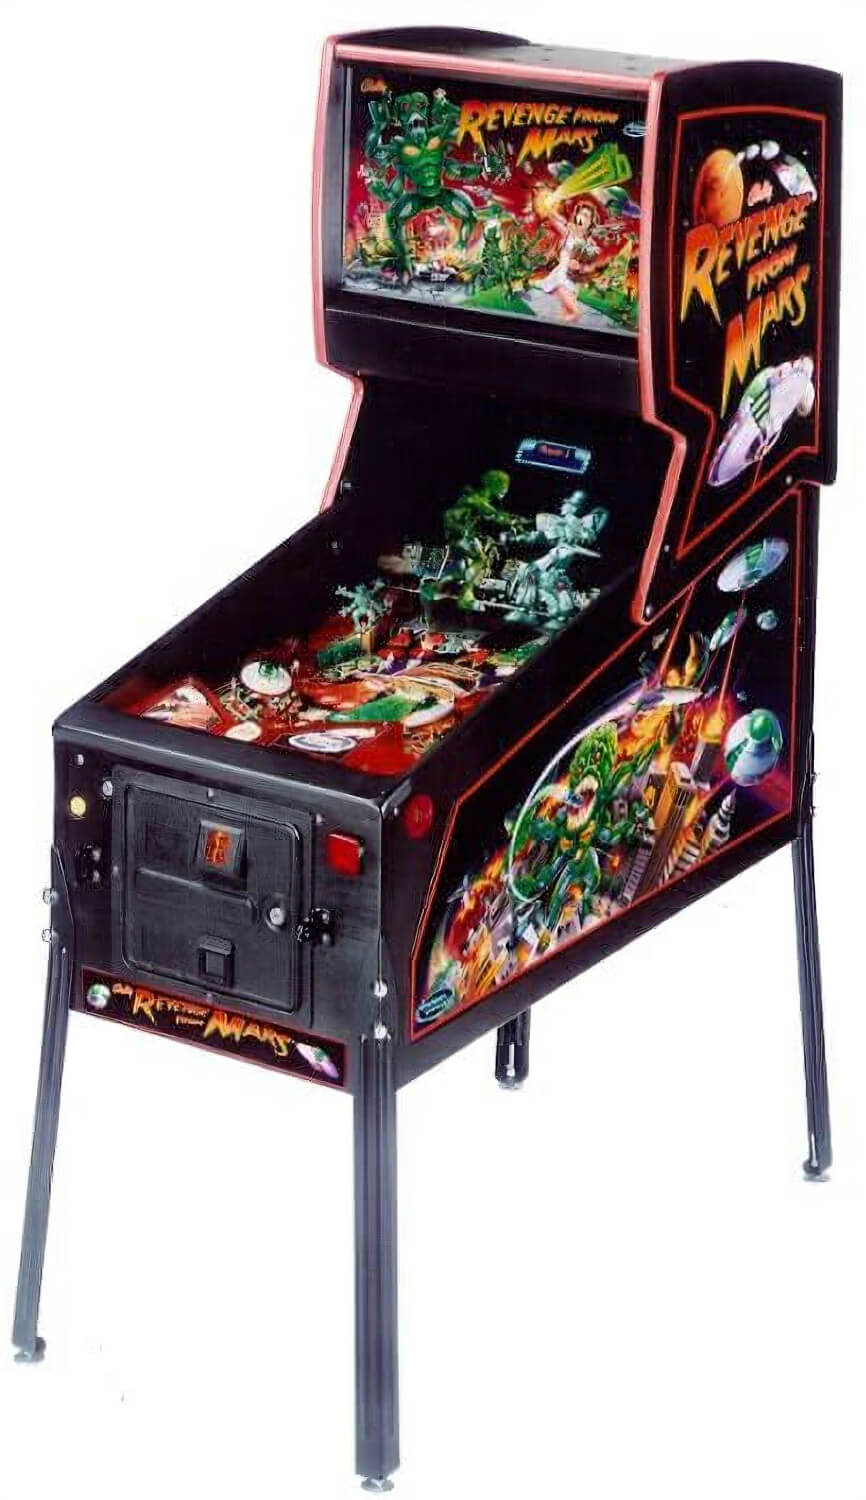 Neon Signs For Sale >> Revenge From Mars Pinball Machine | Liberty Games